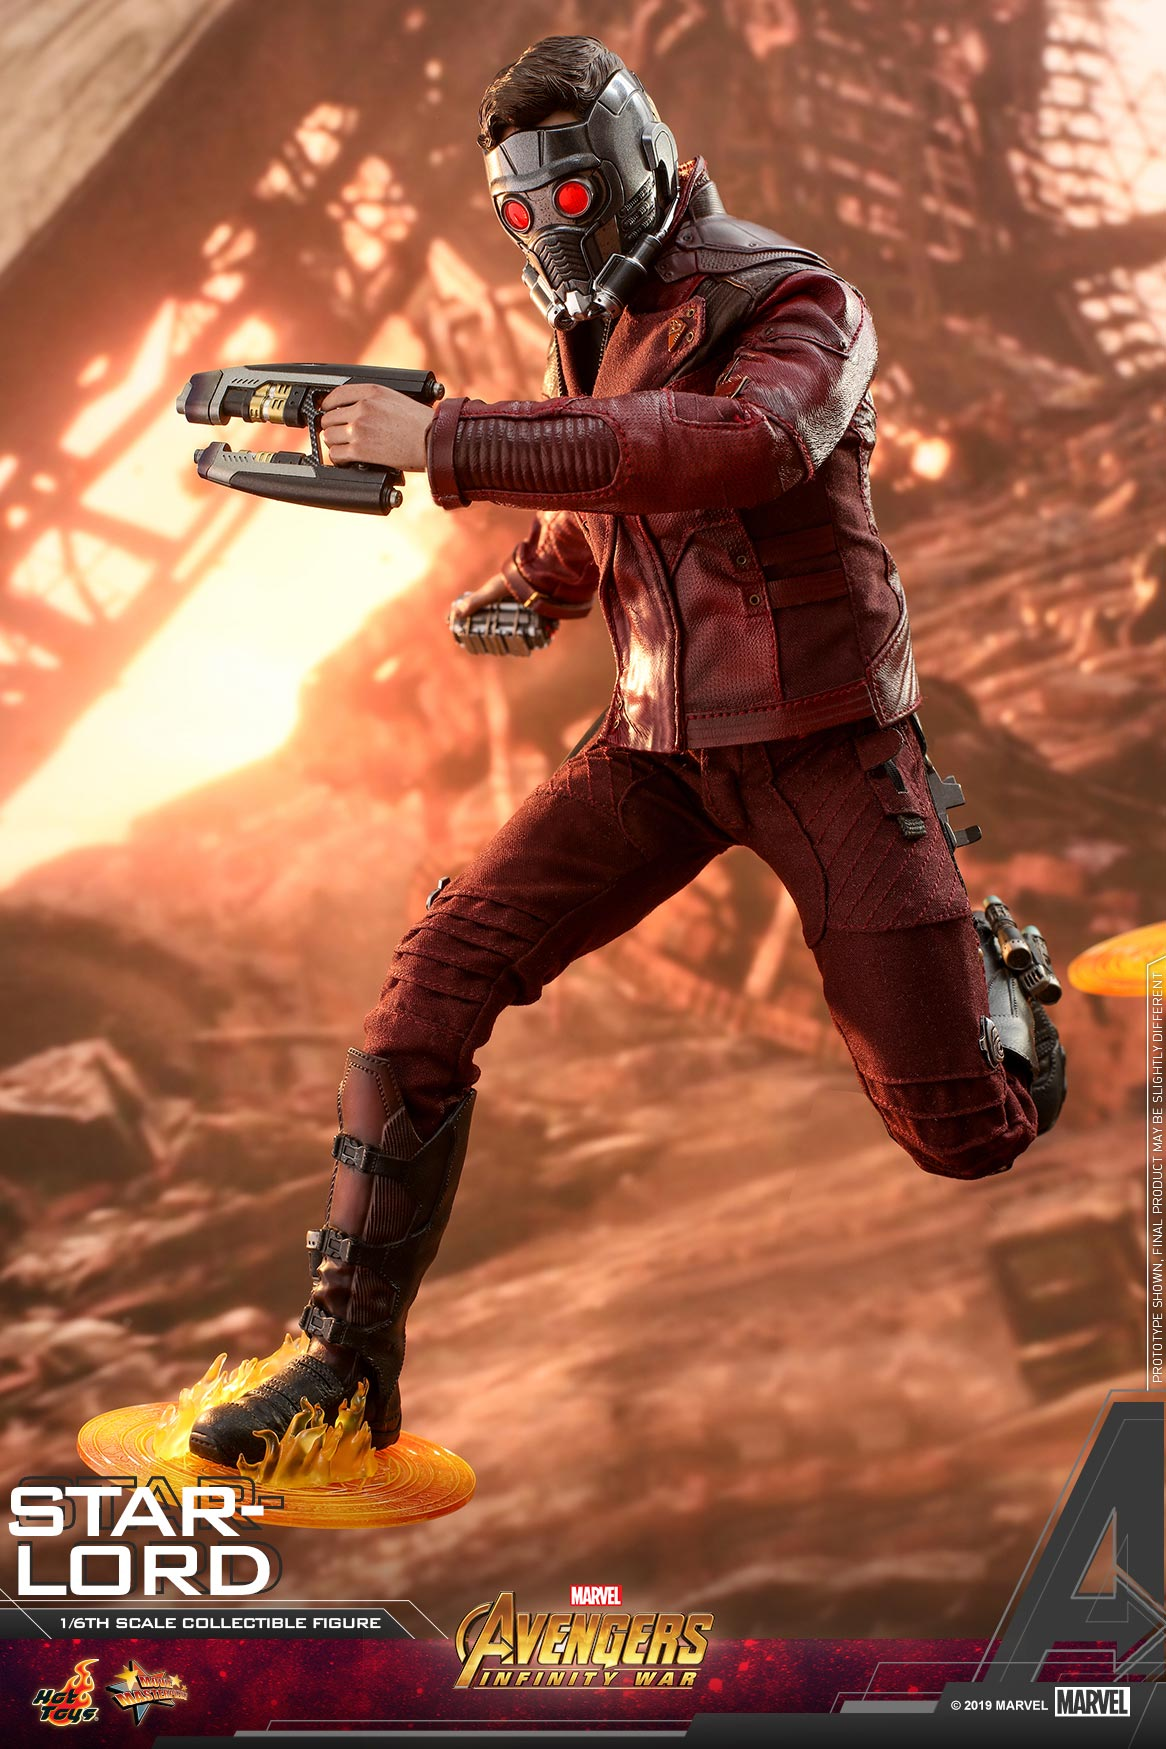 Hot-Toys---AIW---Star-lord-collectible-figure_PR5